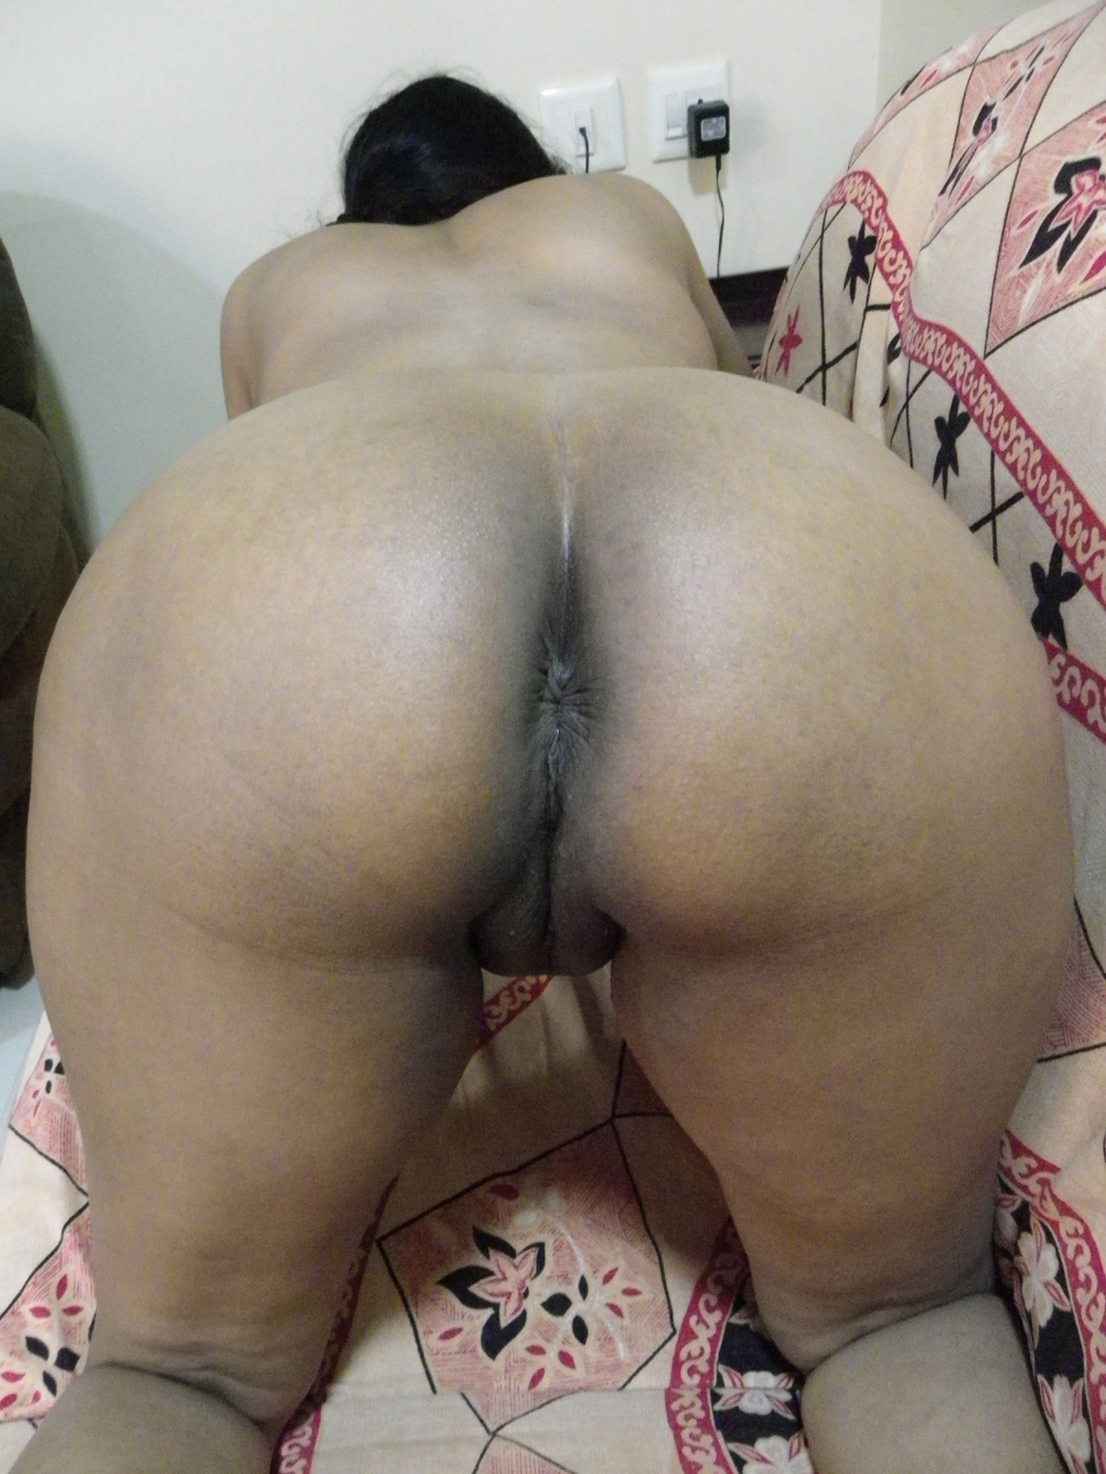 Tamil girls big buttocks sex image